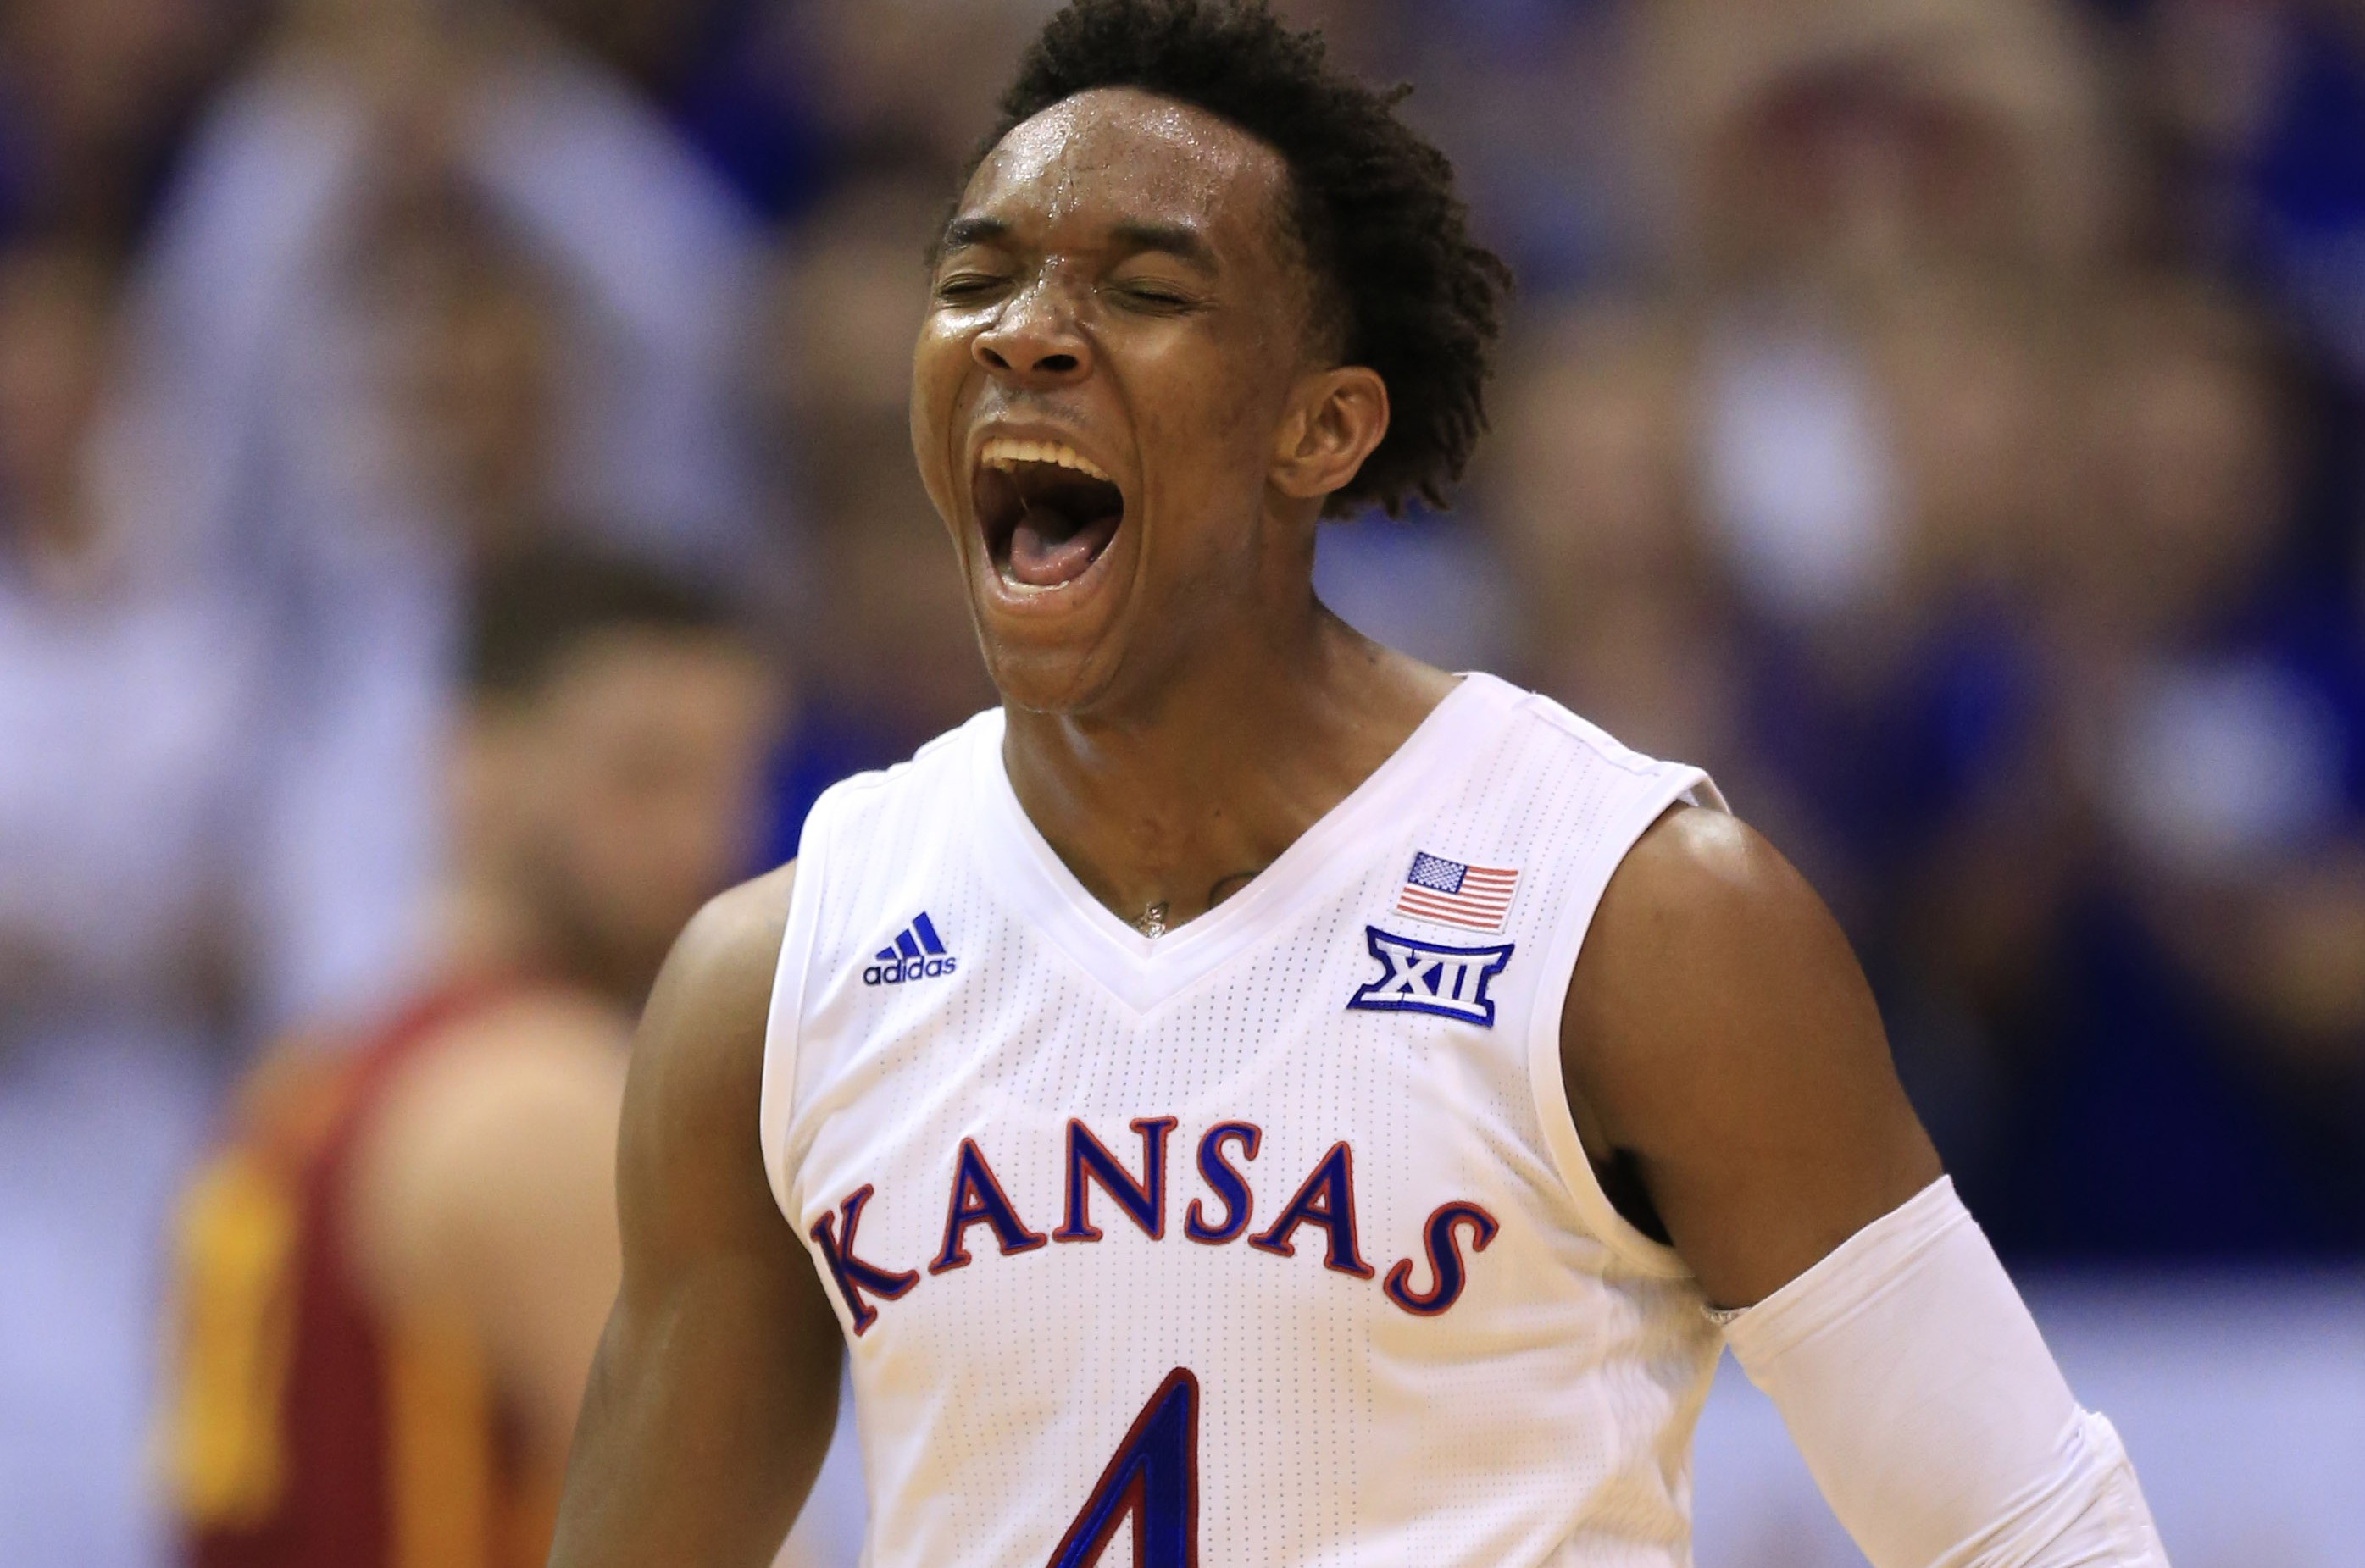 Kansas guard Devonte' Graham (4) celebrates a 3-point basket during the second half of an NCAA college basketball game against Iowa State in Lawrence, Kan., Saturday, March 5, 2016. Kansas defeated Iowa State 85-78. (AP Photo/Orlin Wagner)